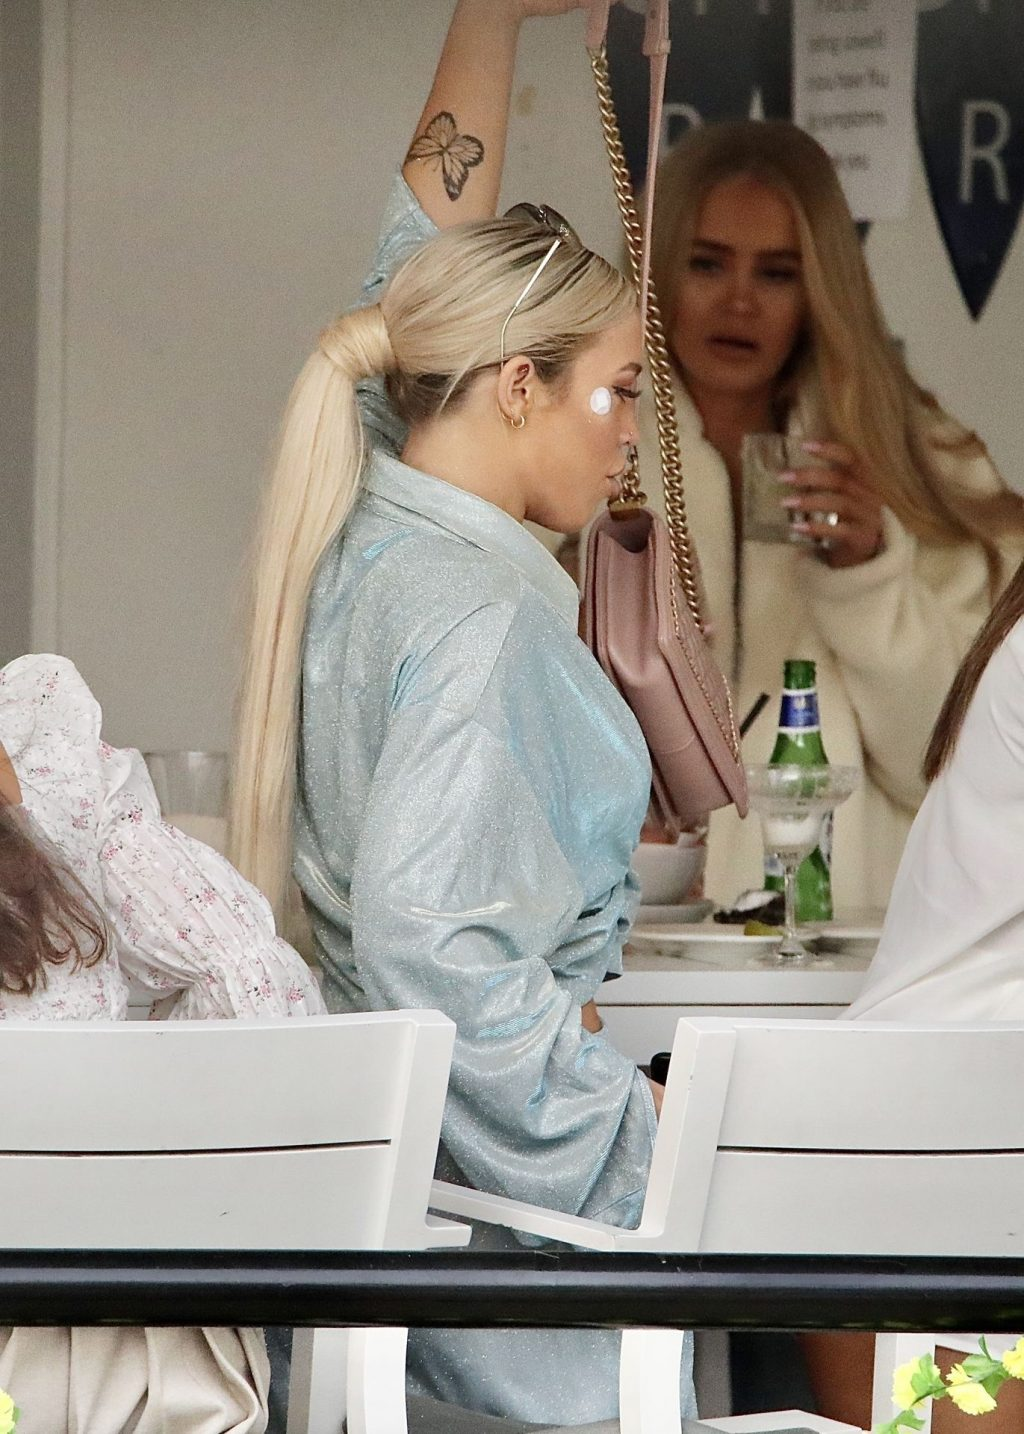 Tammy Hembrow Is Pictured Out and About with Friends on the Gold Coast (33 Photos)